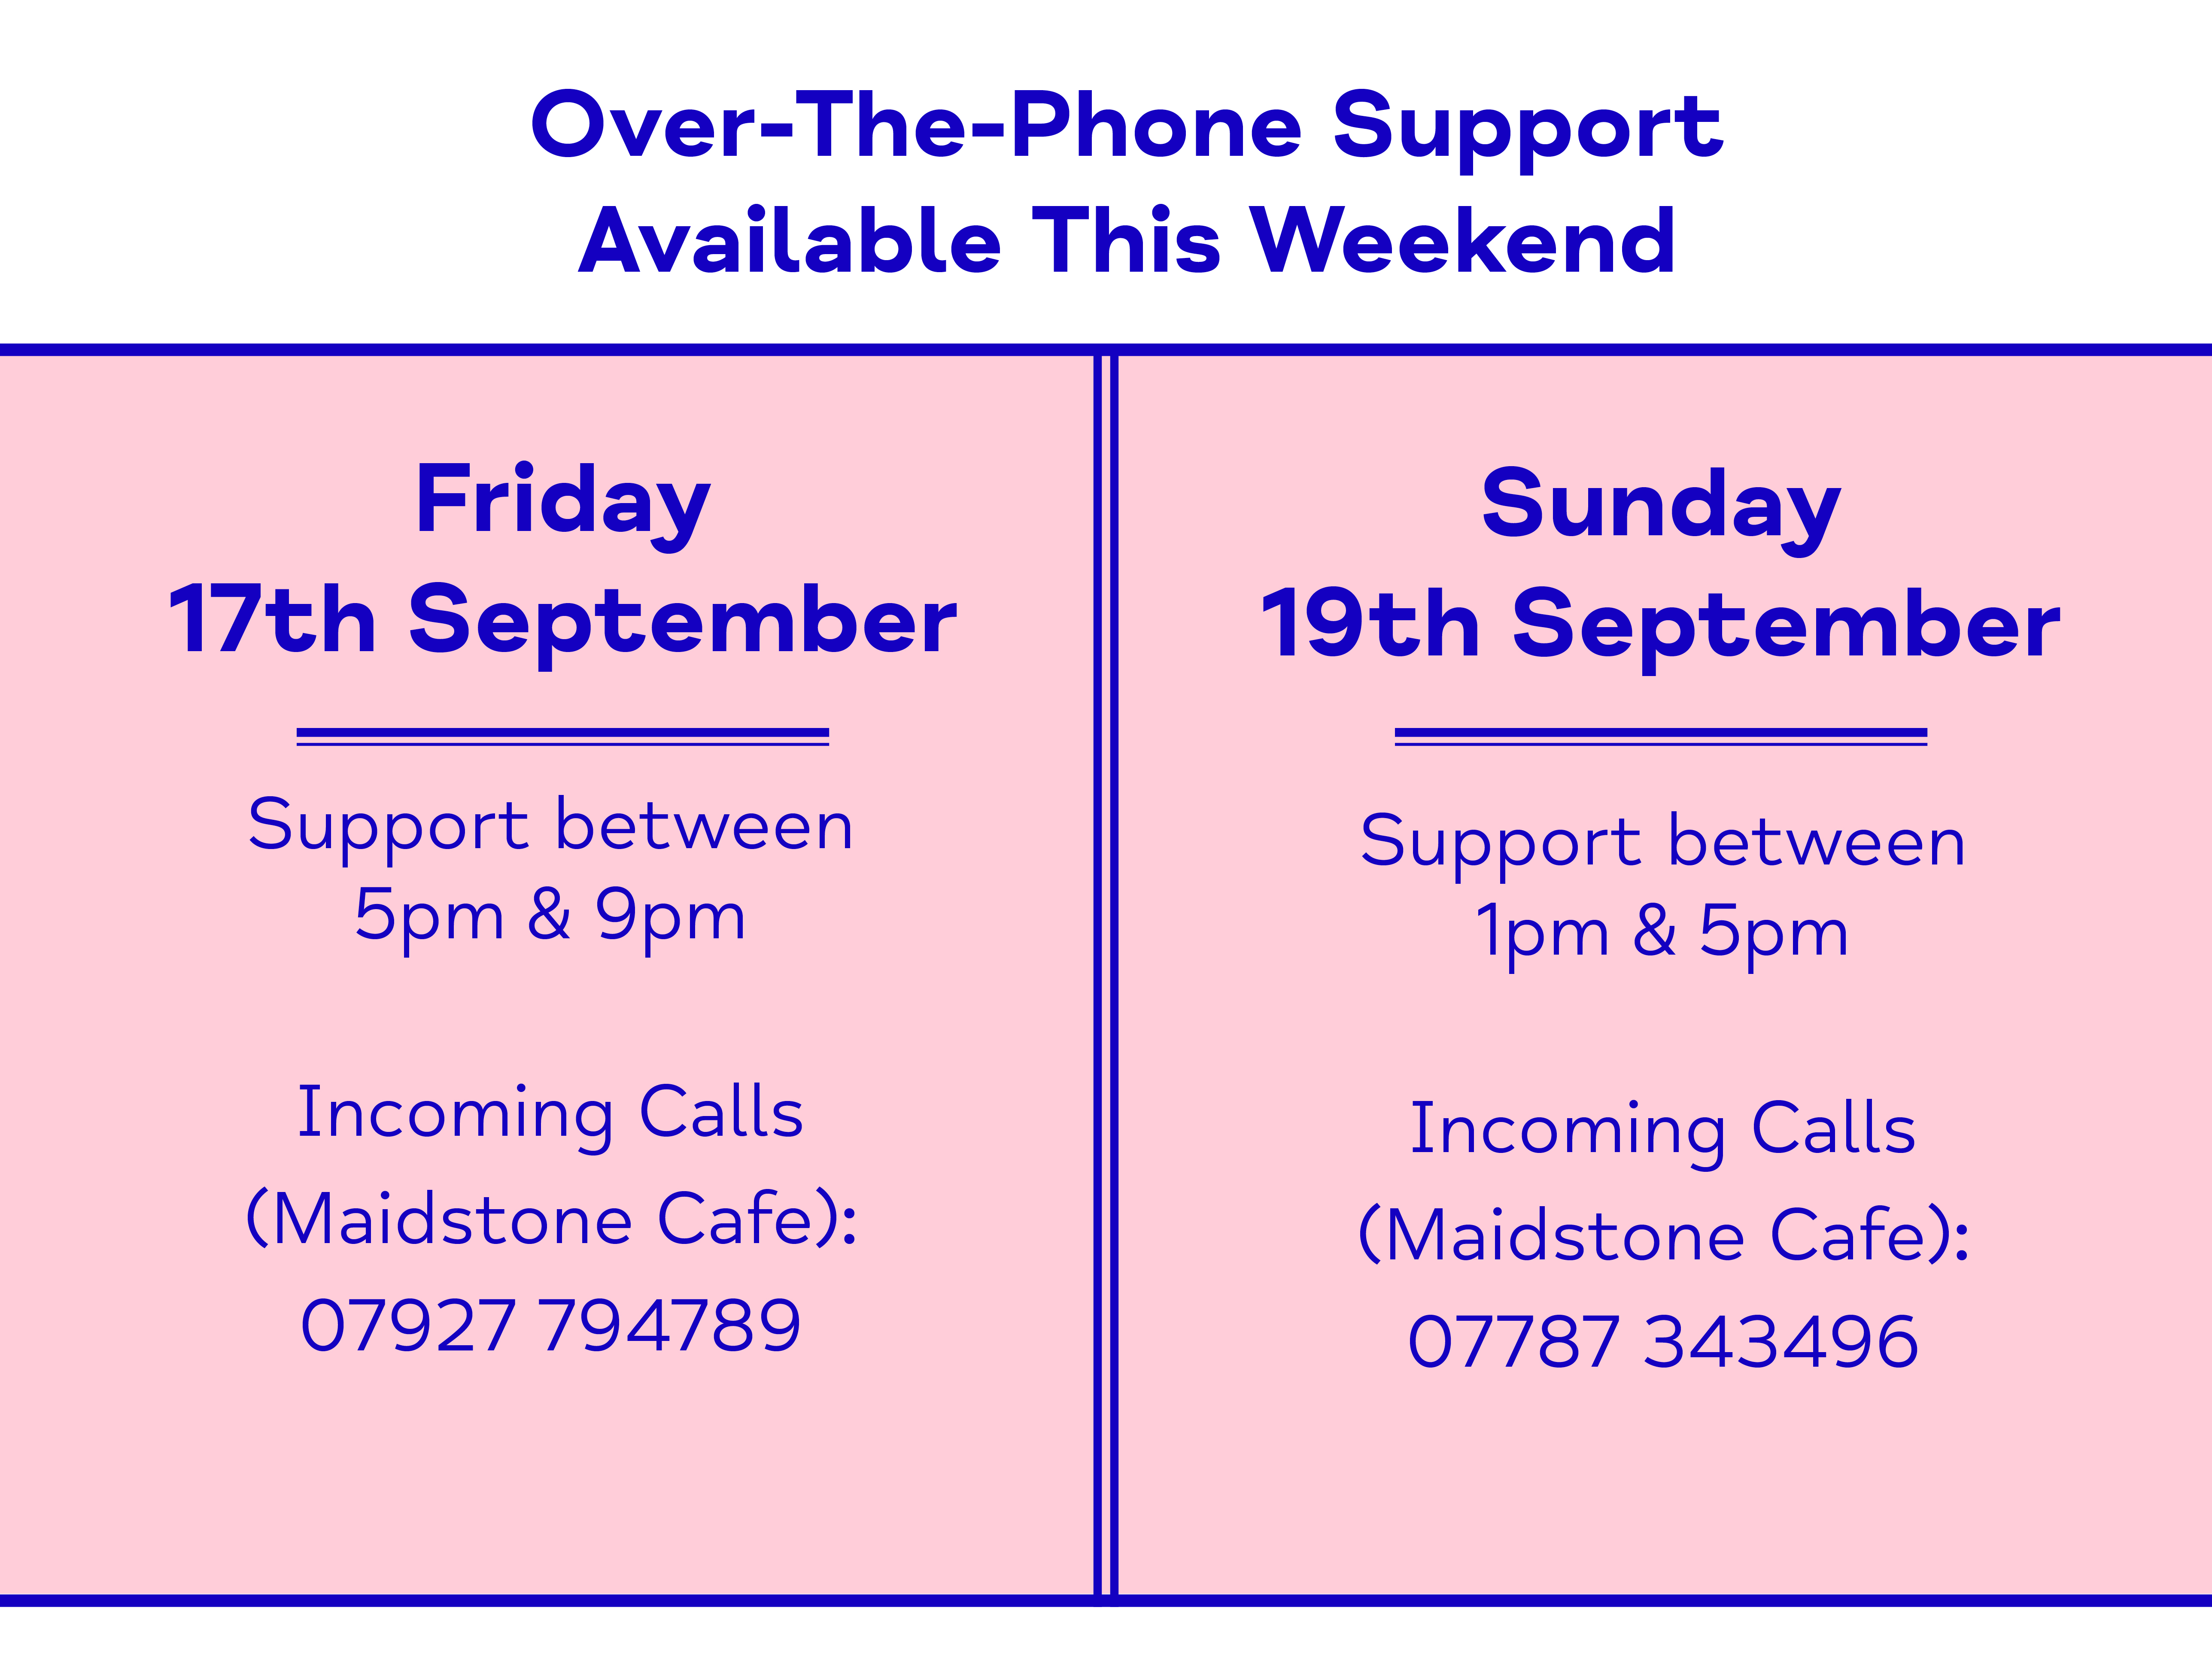 Over-The-Phone Support Available This Weekend. Friday 17th September. Support between 5pm & 9pm Incoming Calls (Maidstone Cafe): 07927 794789. Sunday 19th September. Support between 1pm & 5pm Incoming Calls (Maidstone Cafe): 07787 343496.